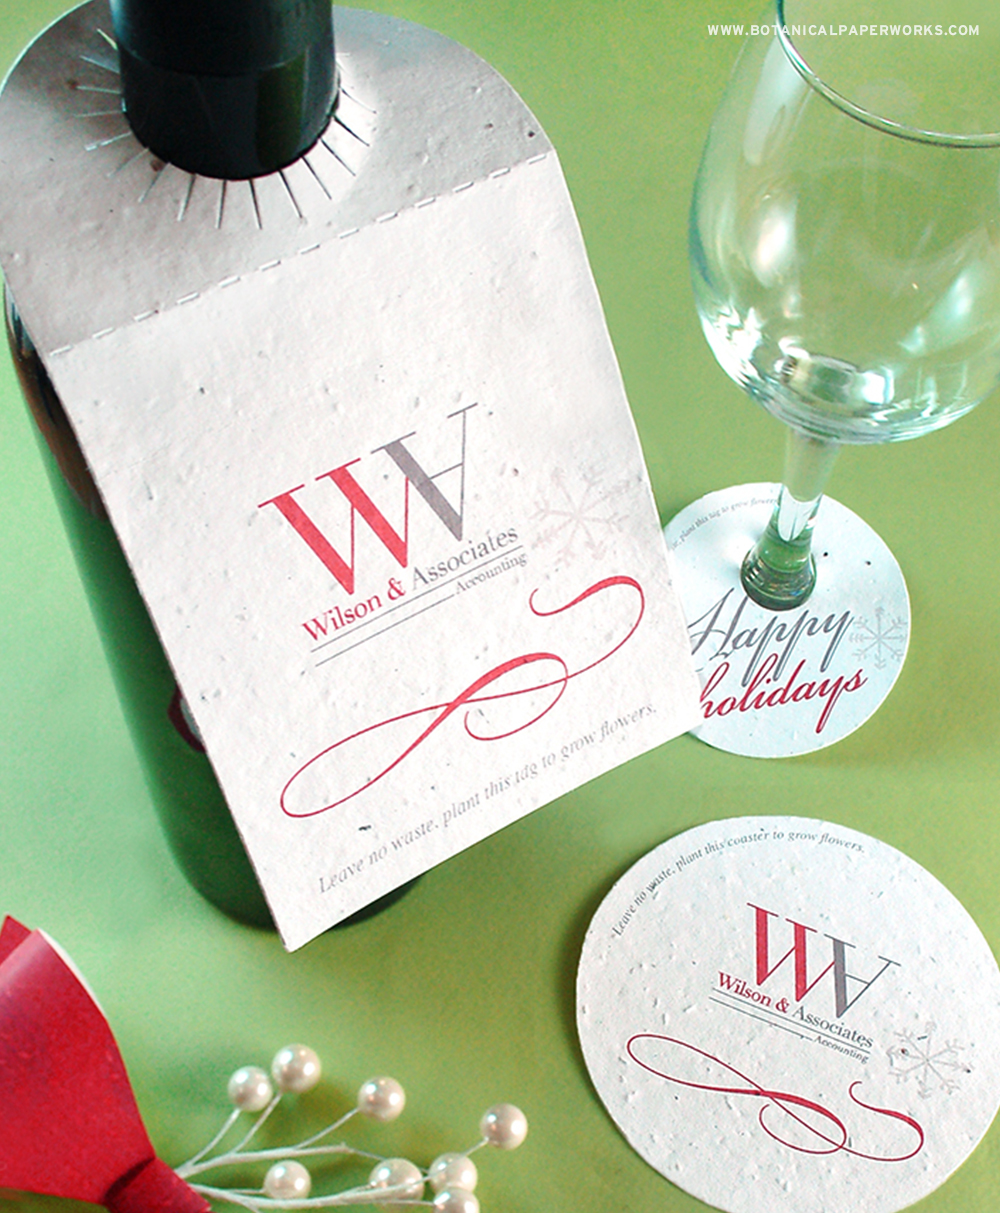 Holiday-Seed-Paper-Promotional-Products-Events